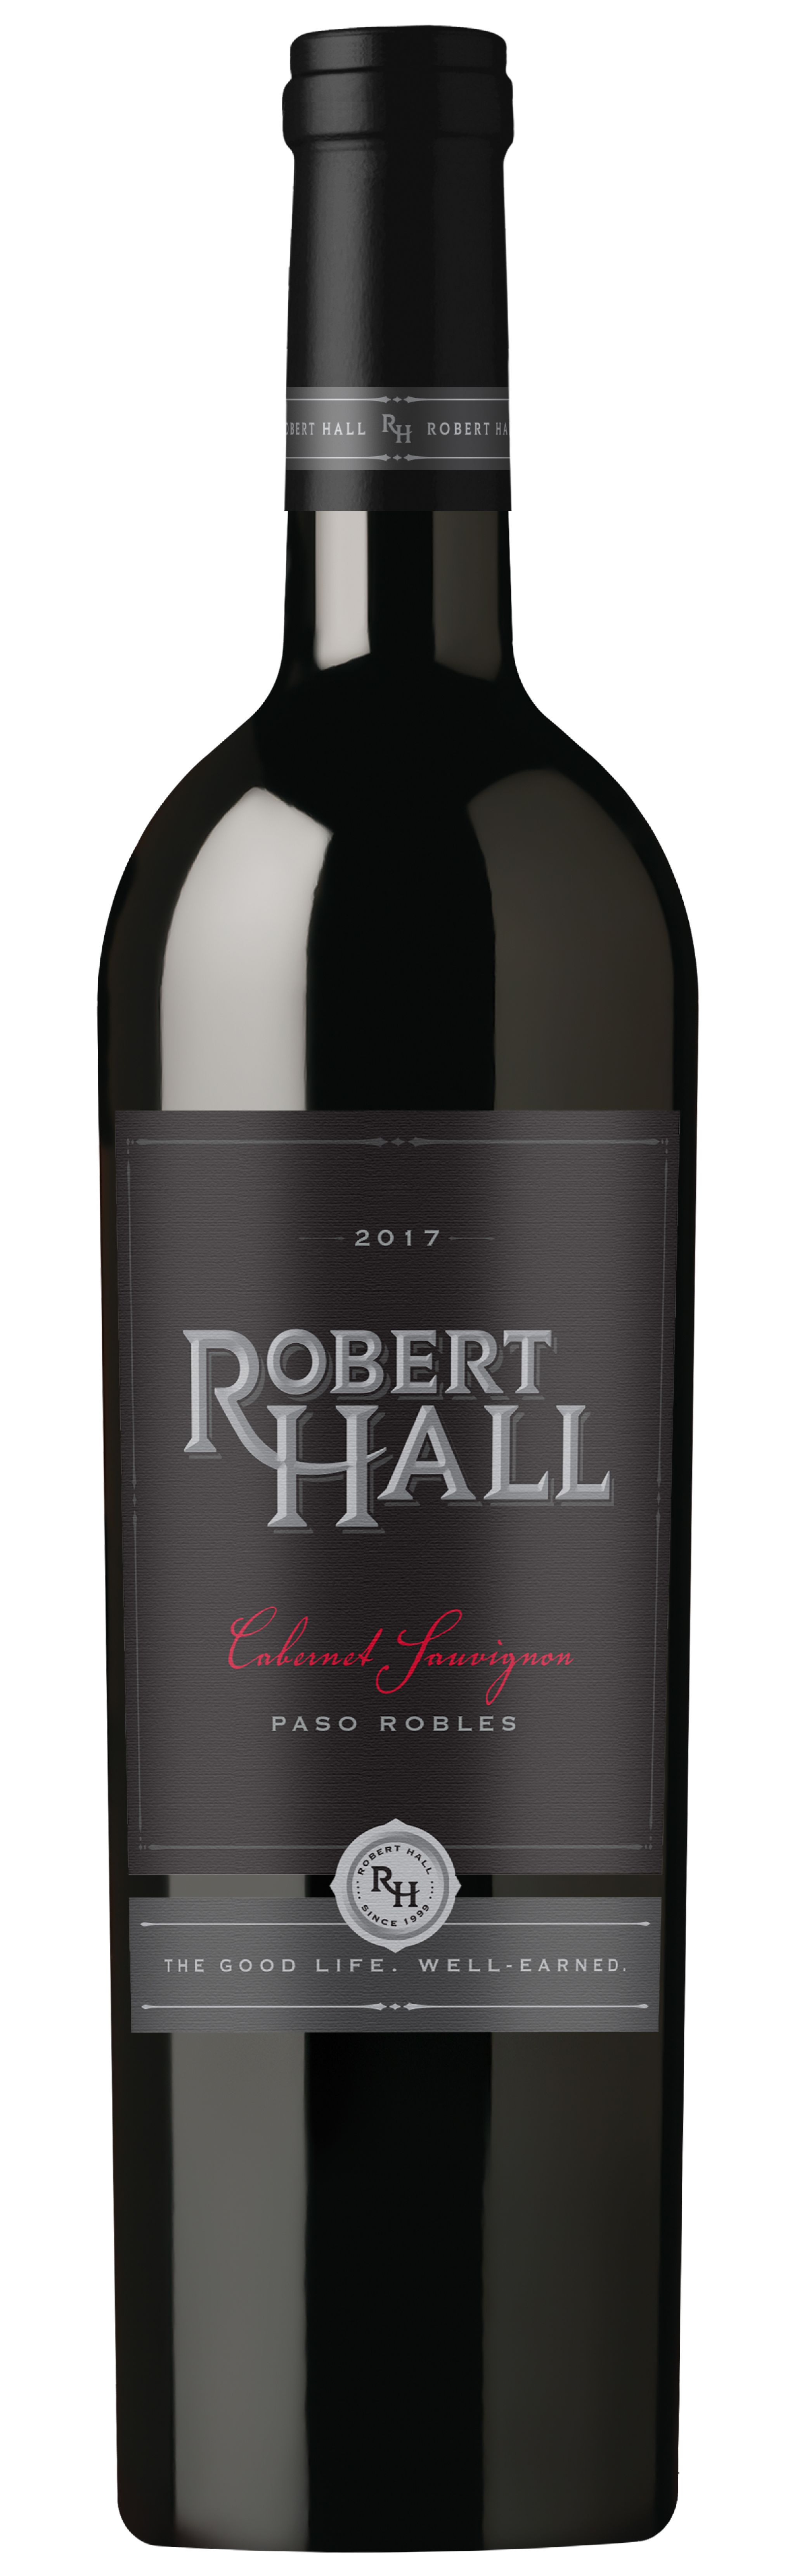 Robert Hall Cabernet Sauvignon 2017  Front Bottle Shot